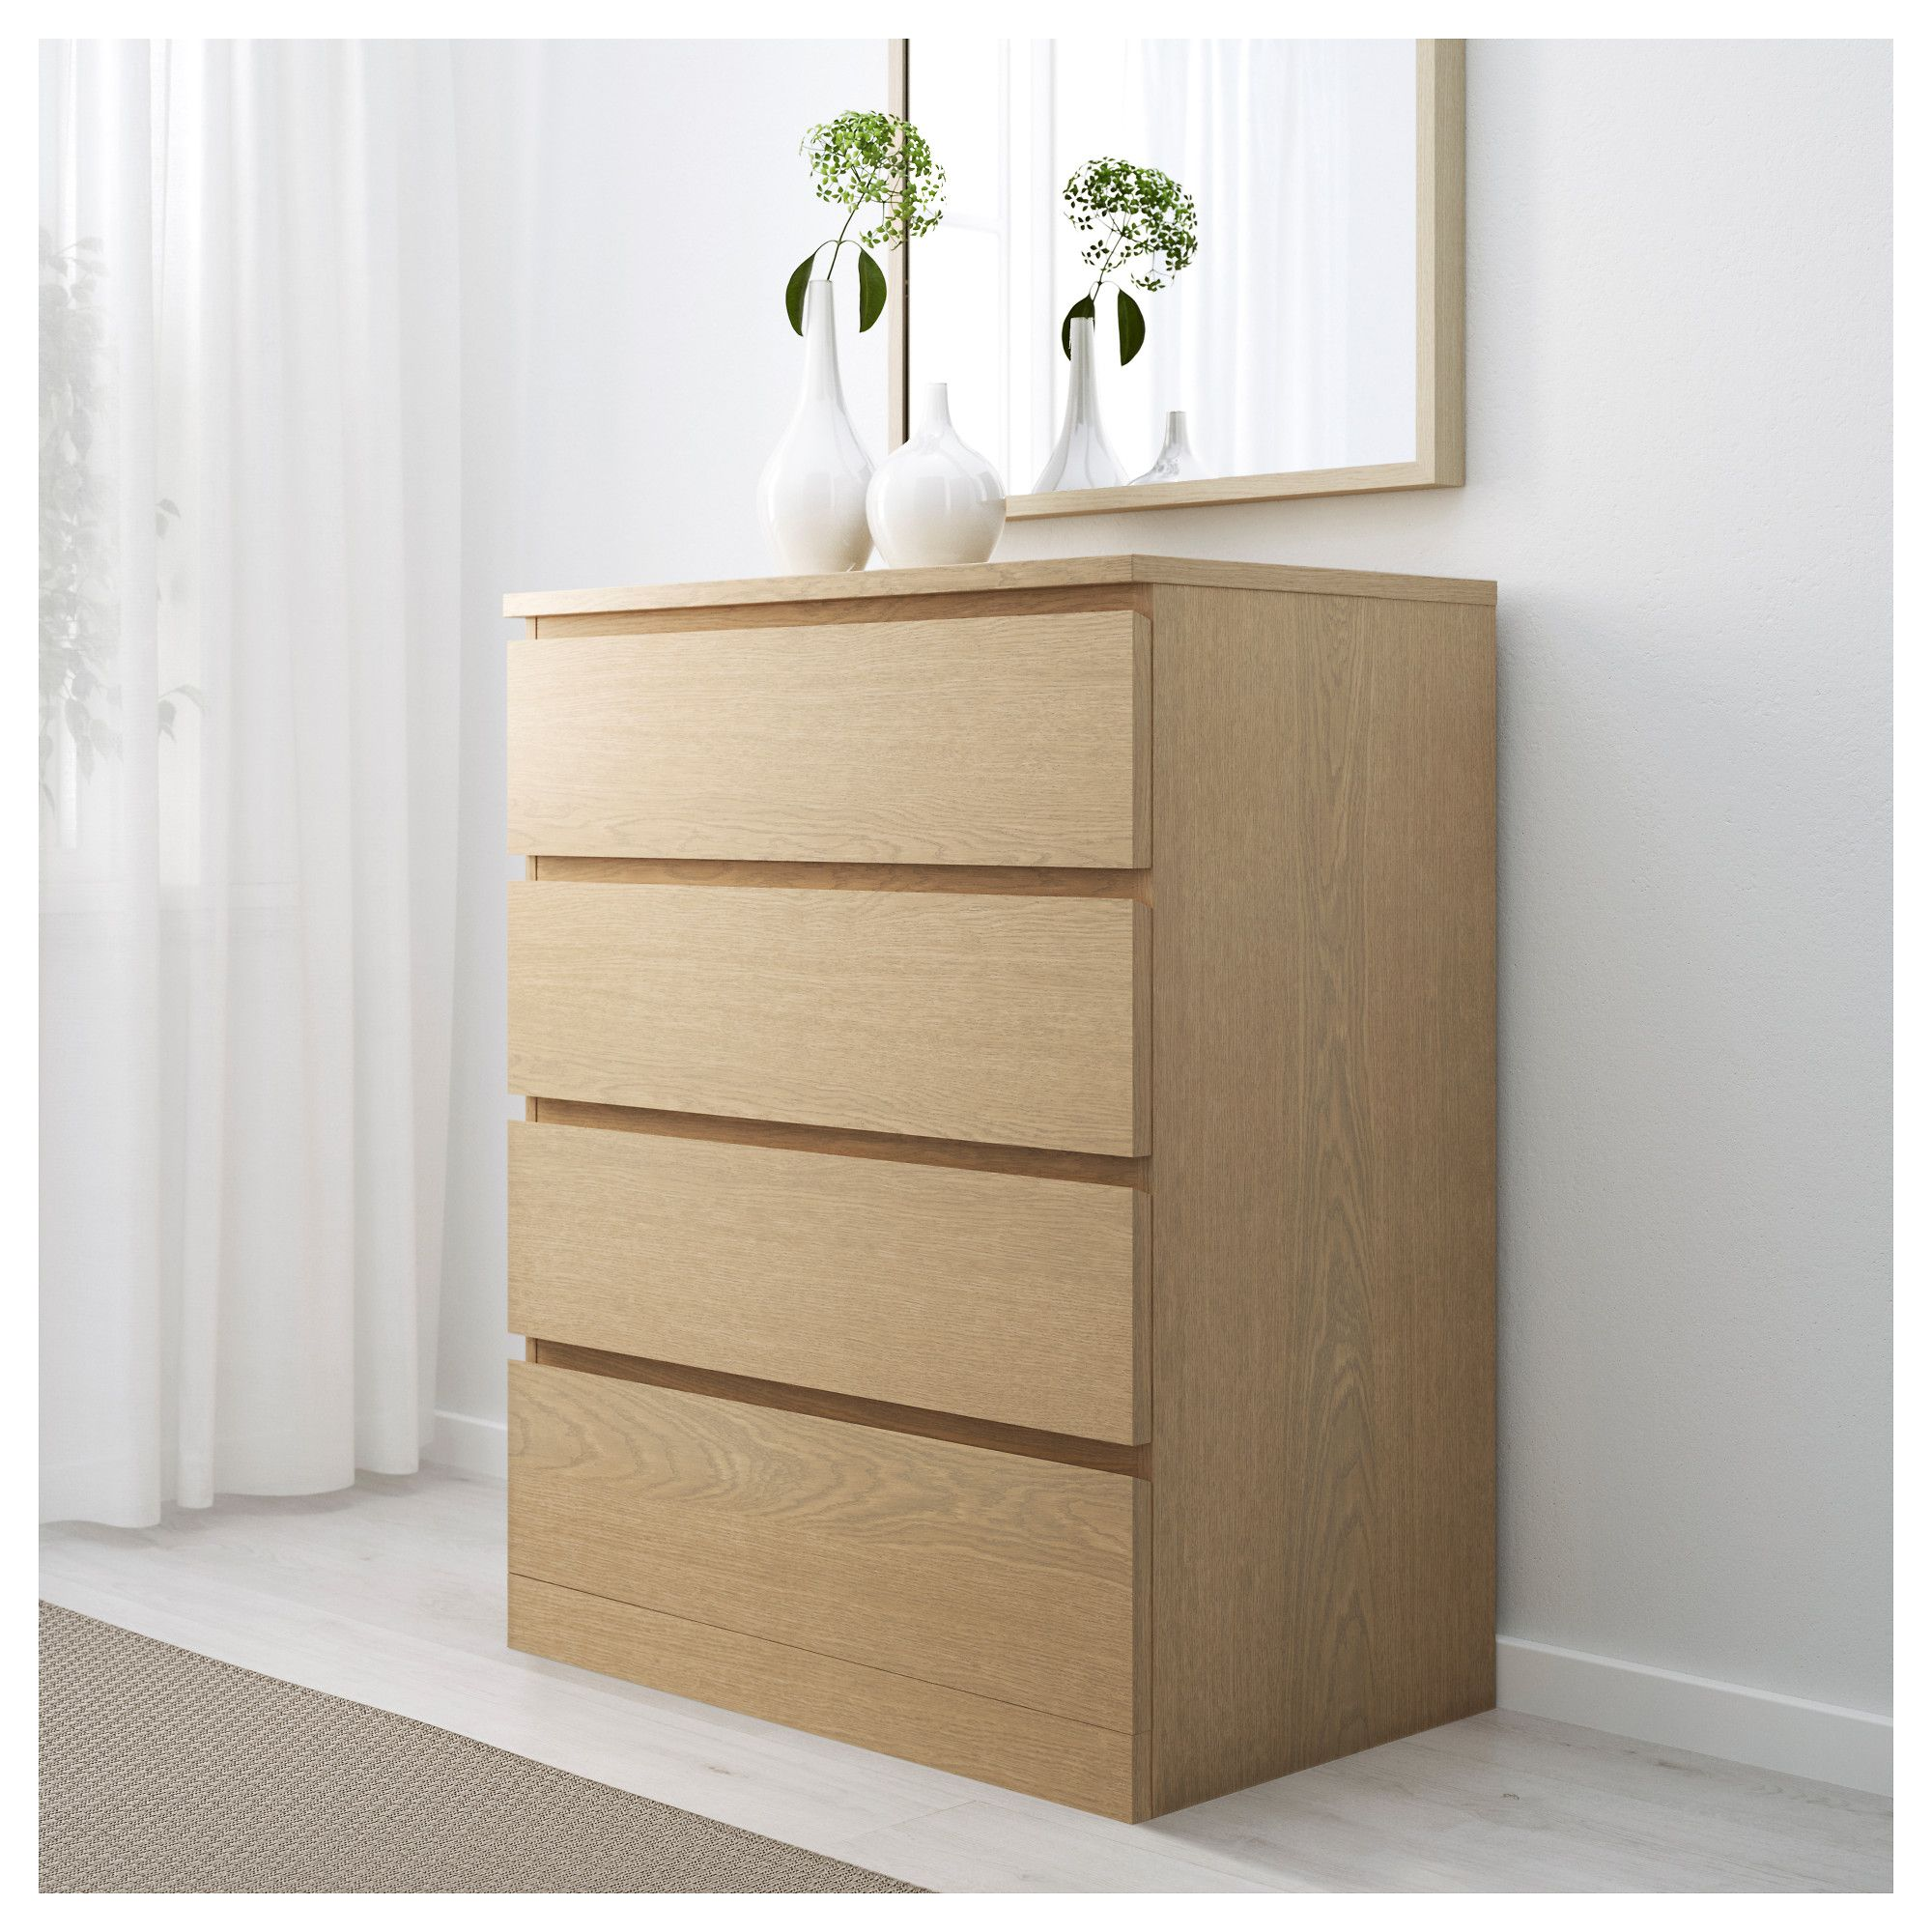 Malm 4 Drawer Chest White Stained Oak